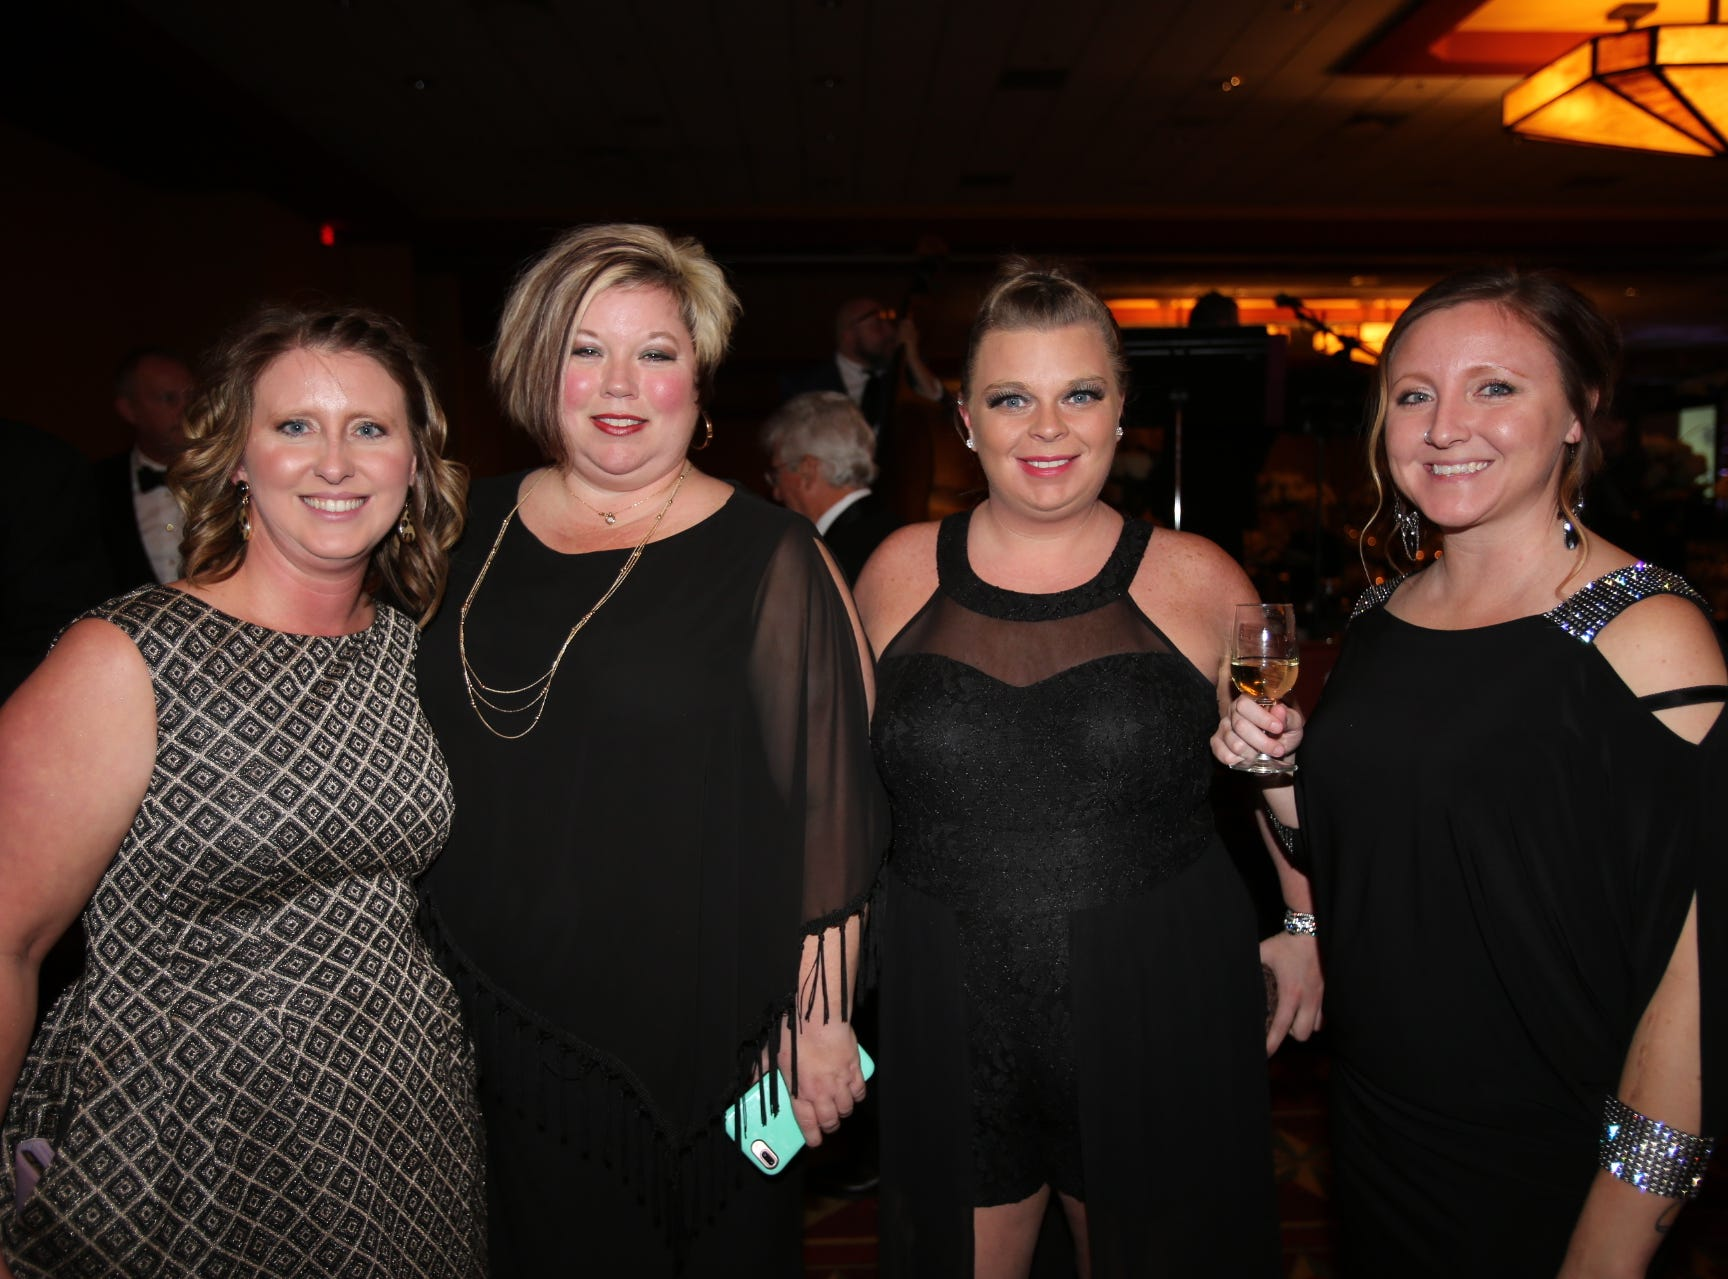 Tracy Johnson, Lelia Voss, Brittany Morris, and Alicia Owen